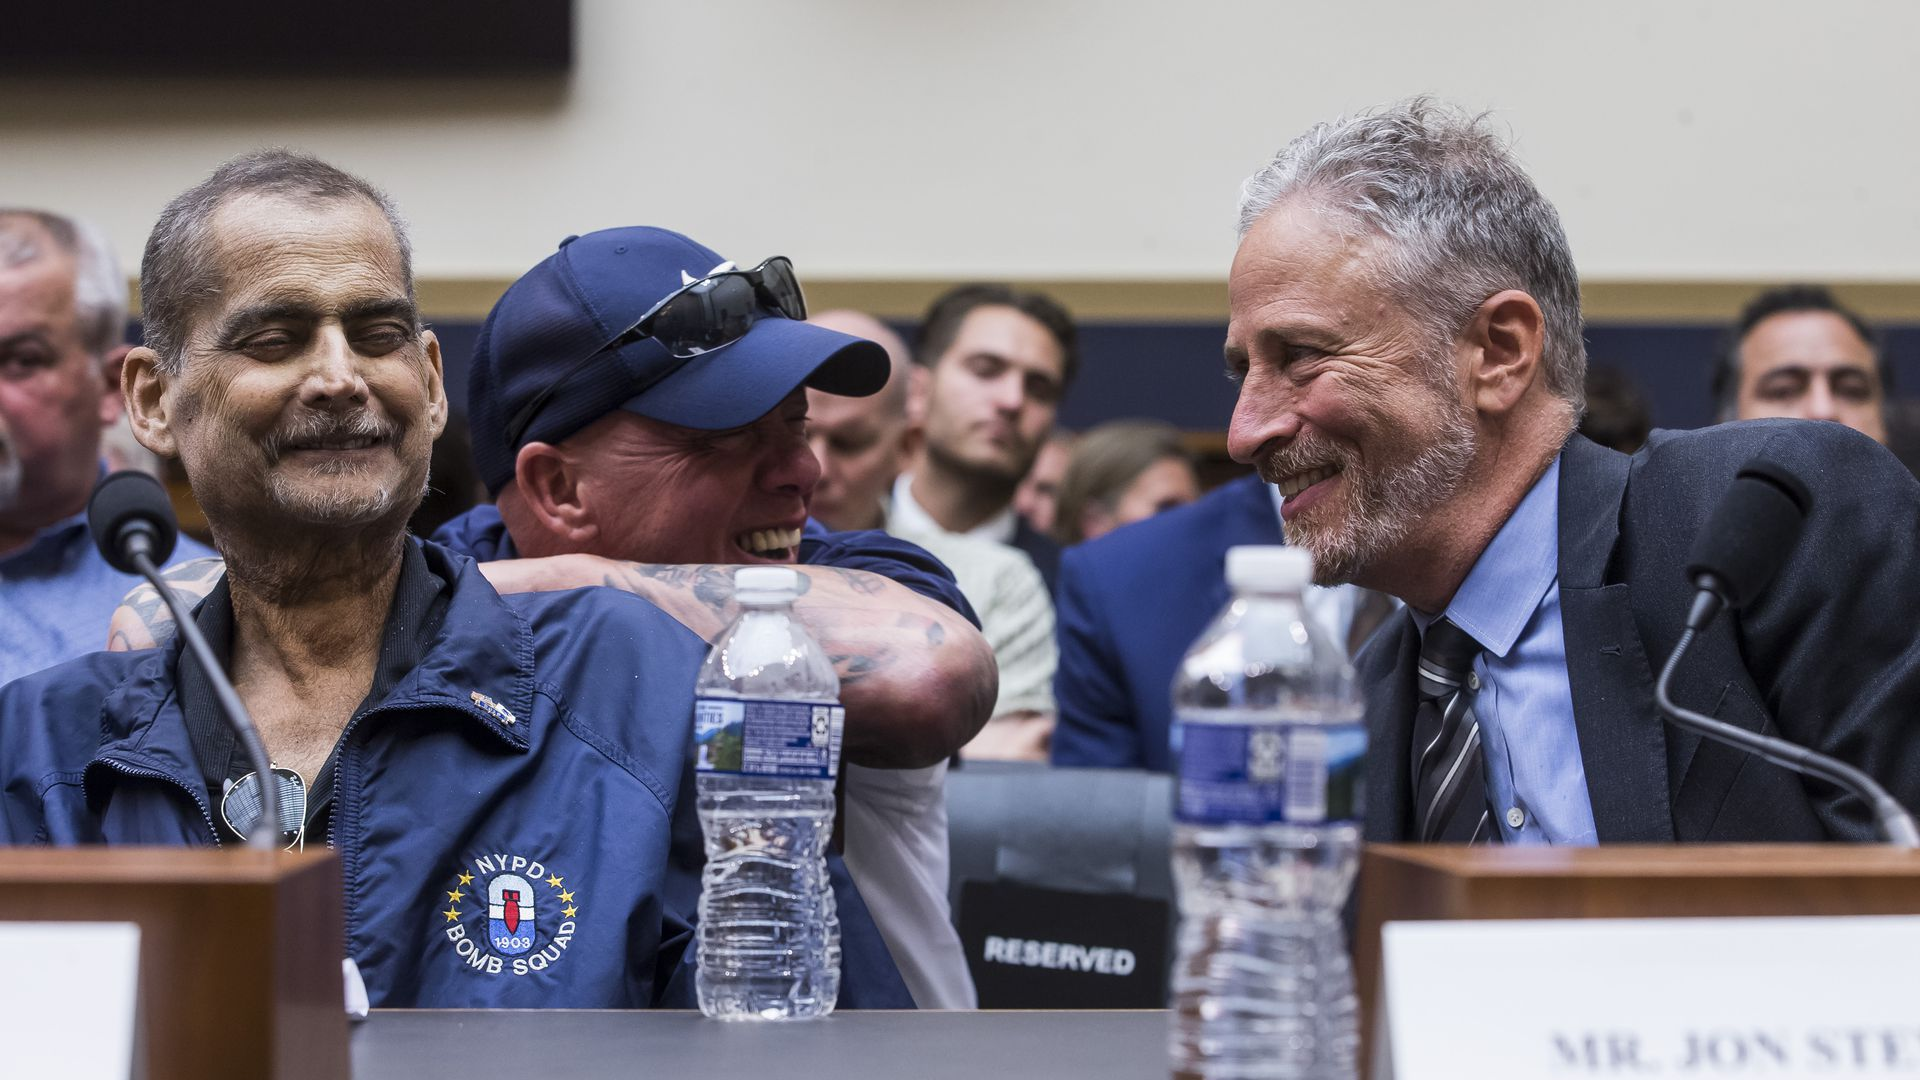 Former Daily Show host Jon Stewart speaking to a 9/11 first responder at the House Judiciary Committee meeting